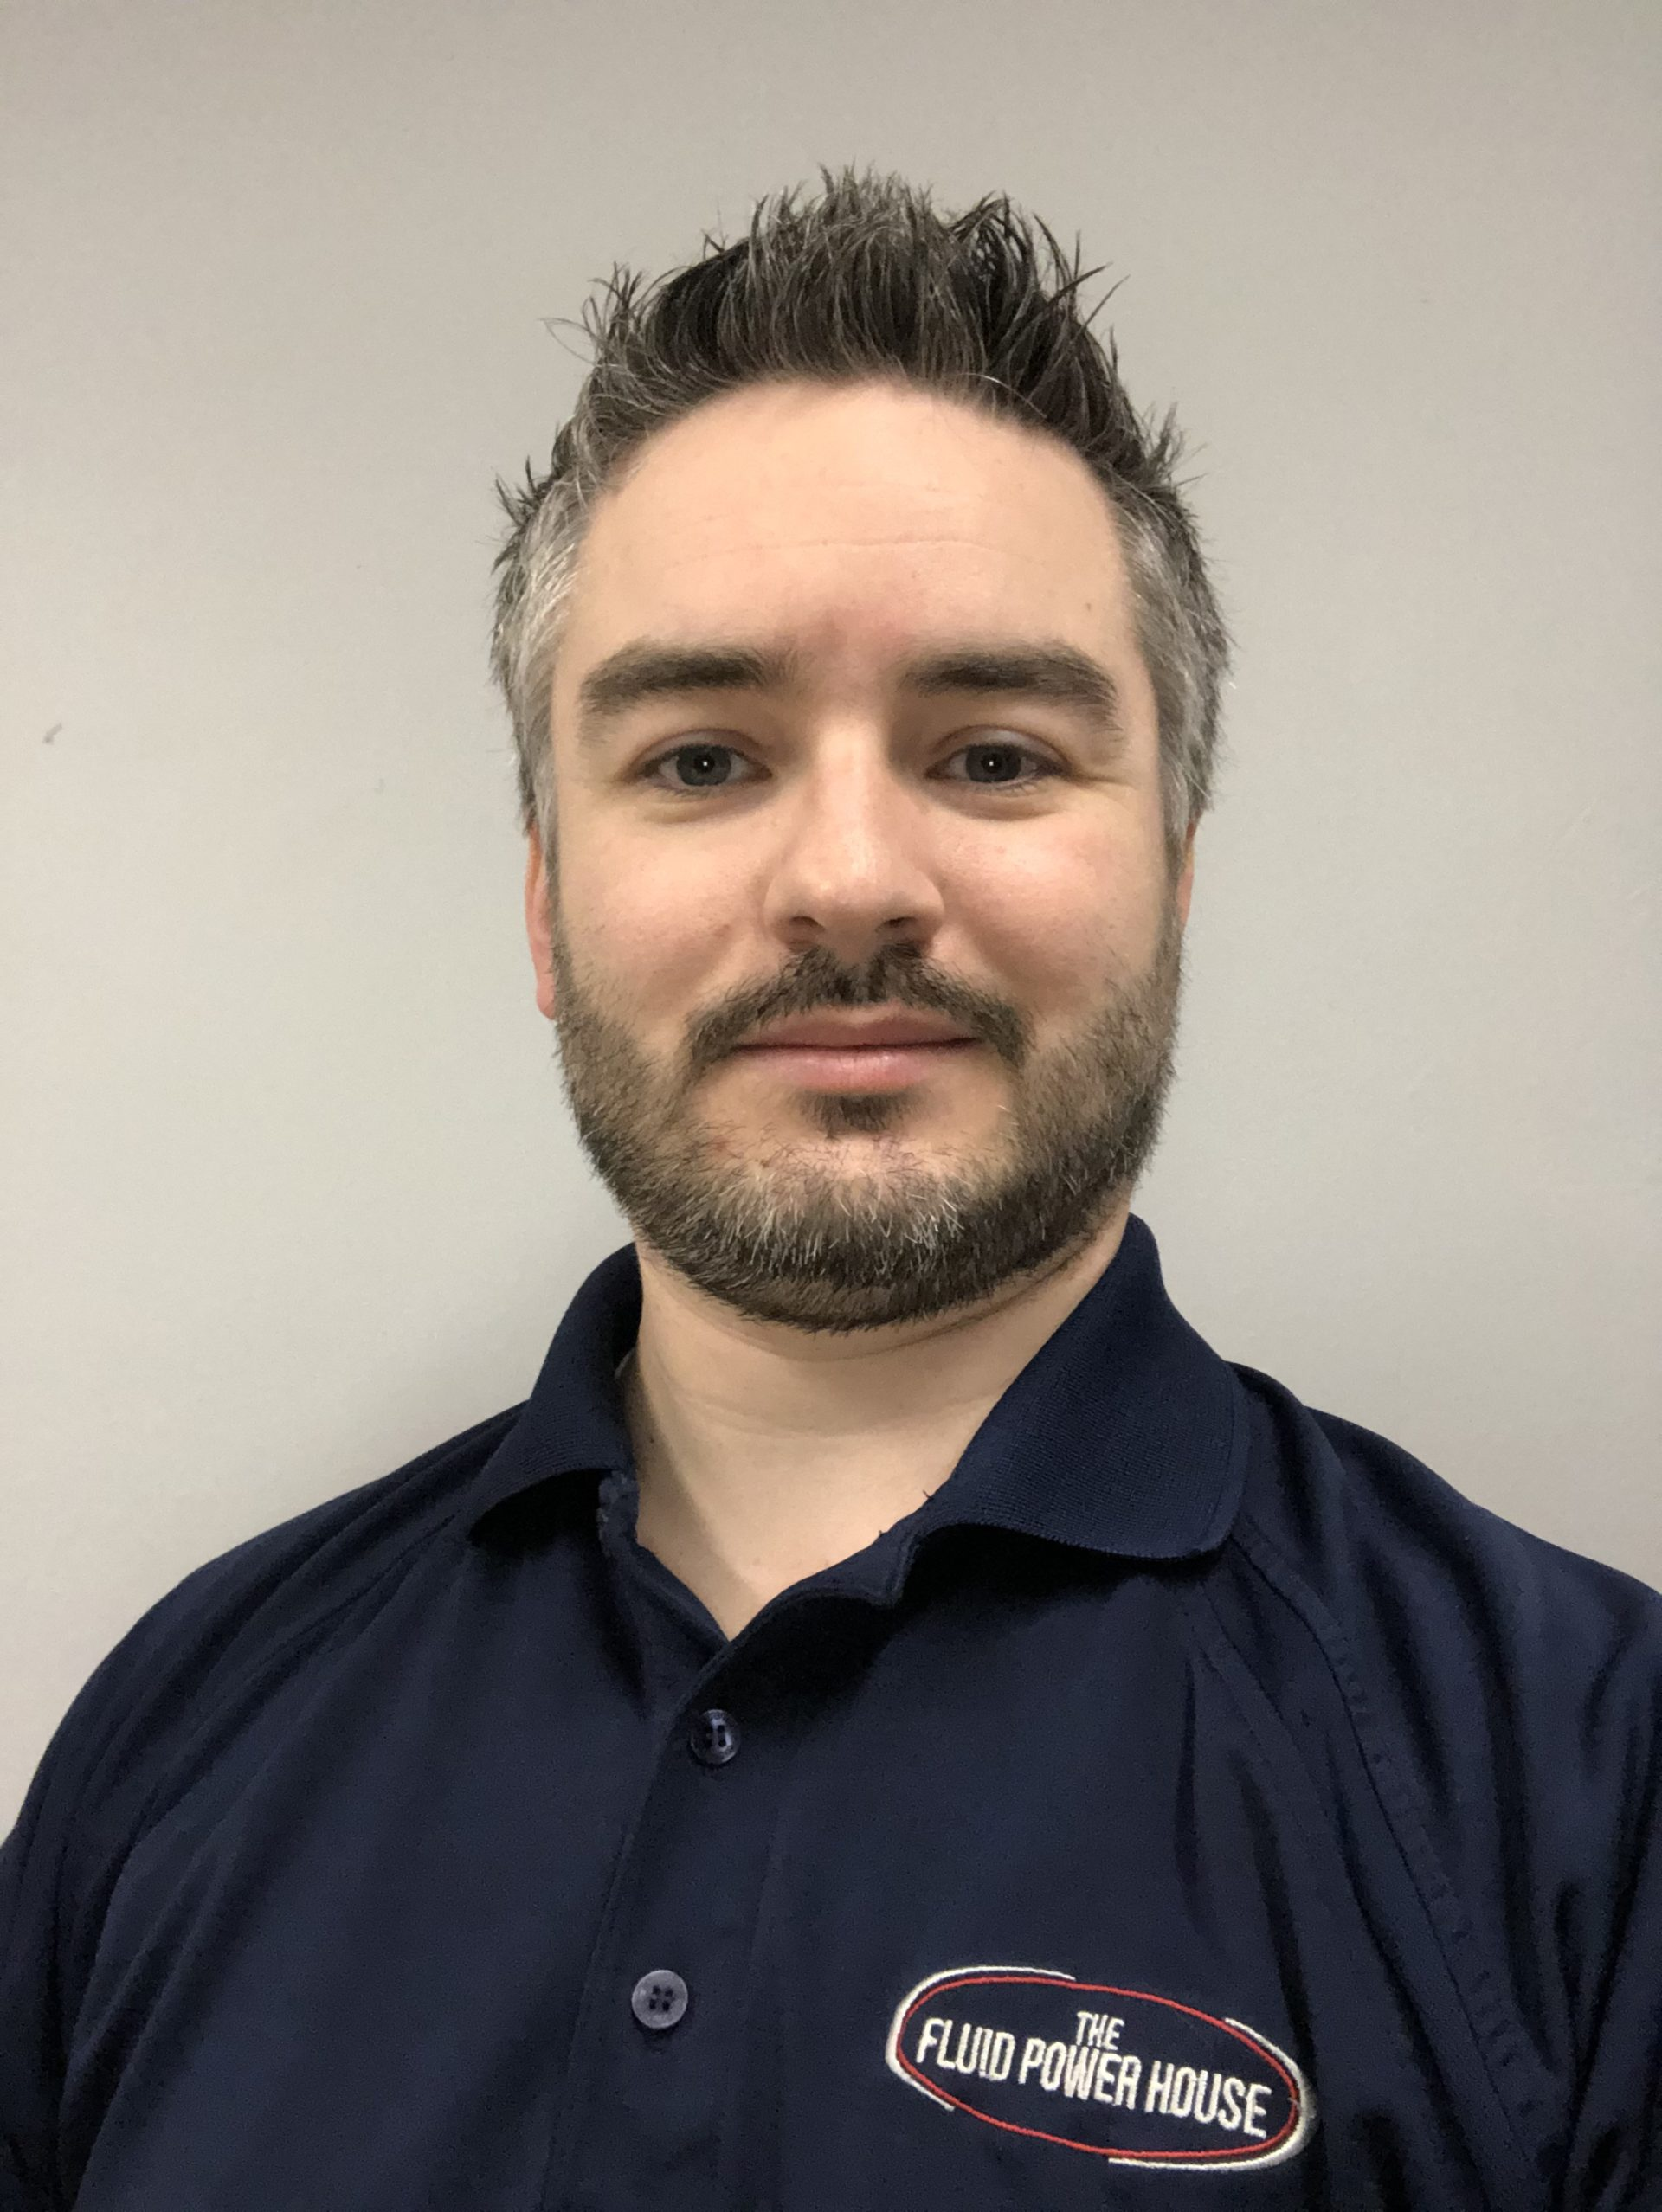 Phil's story - Engineering Design and Hydraulics Specialist at Motion Canada